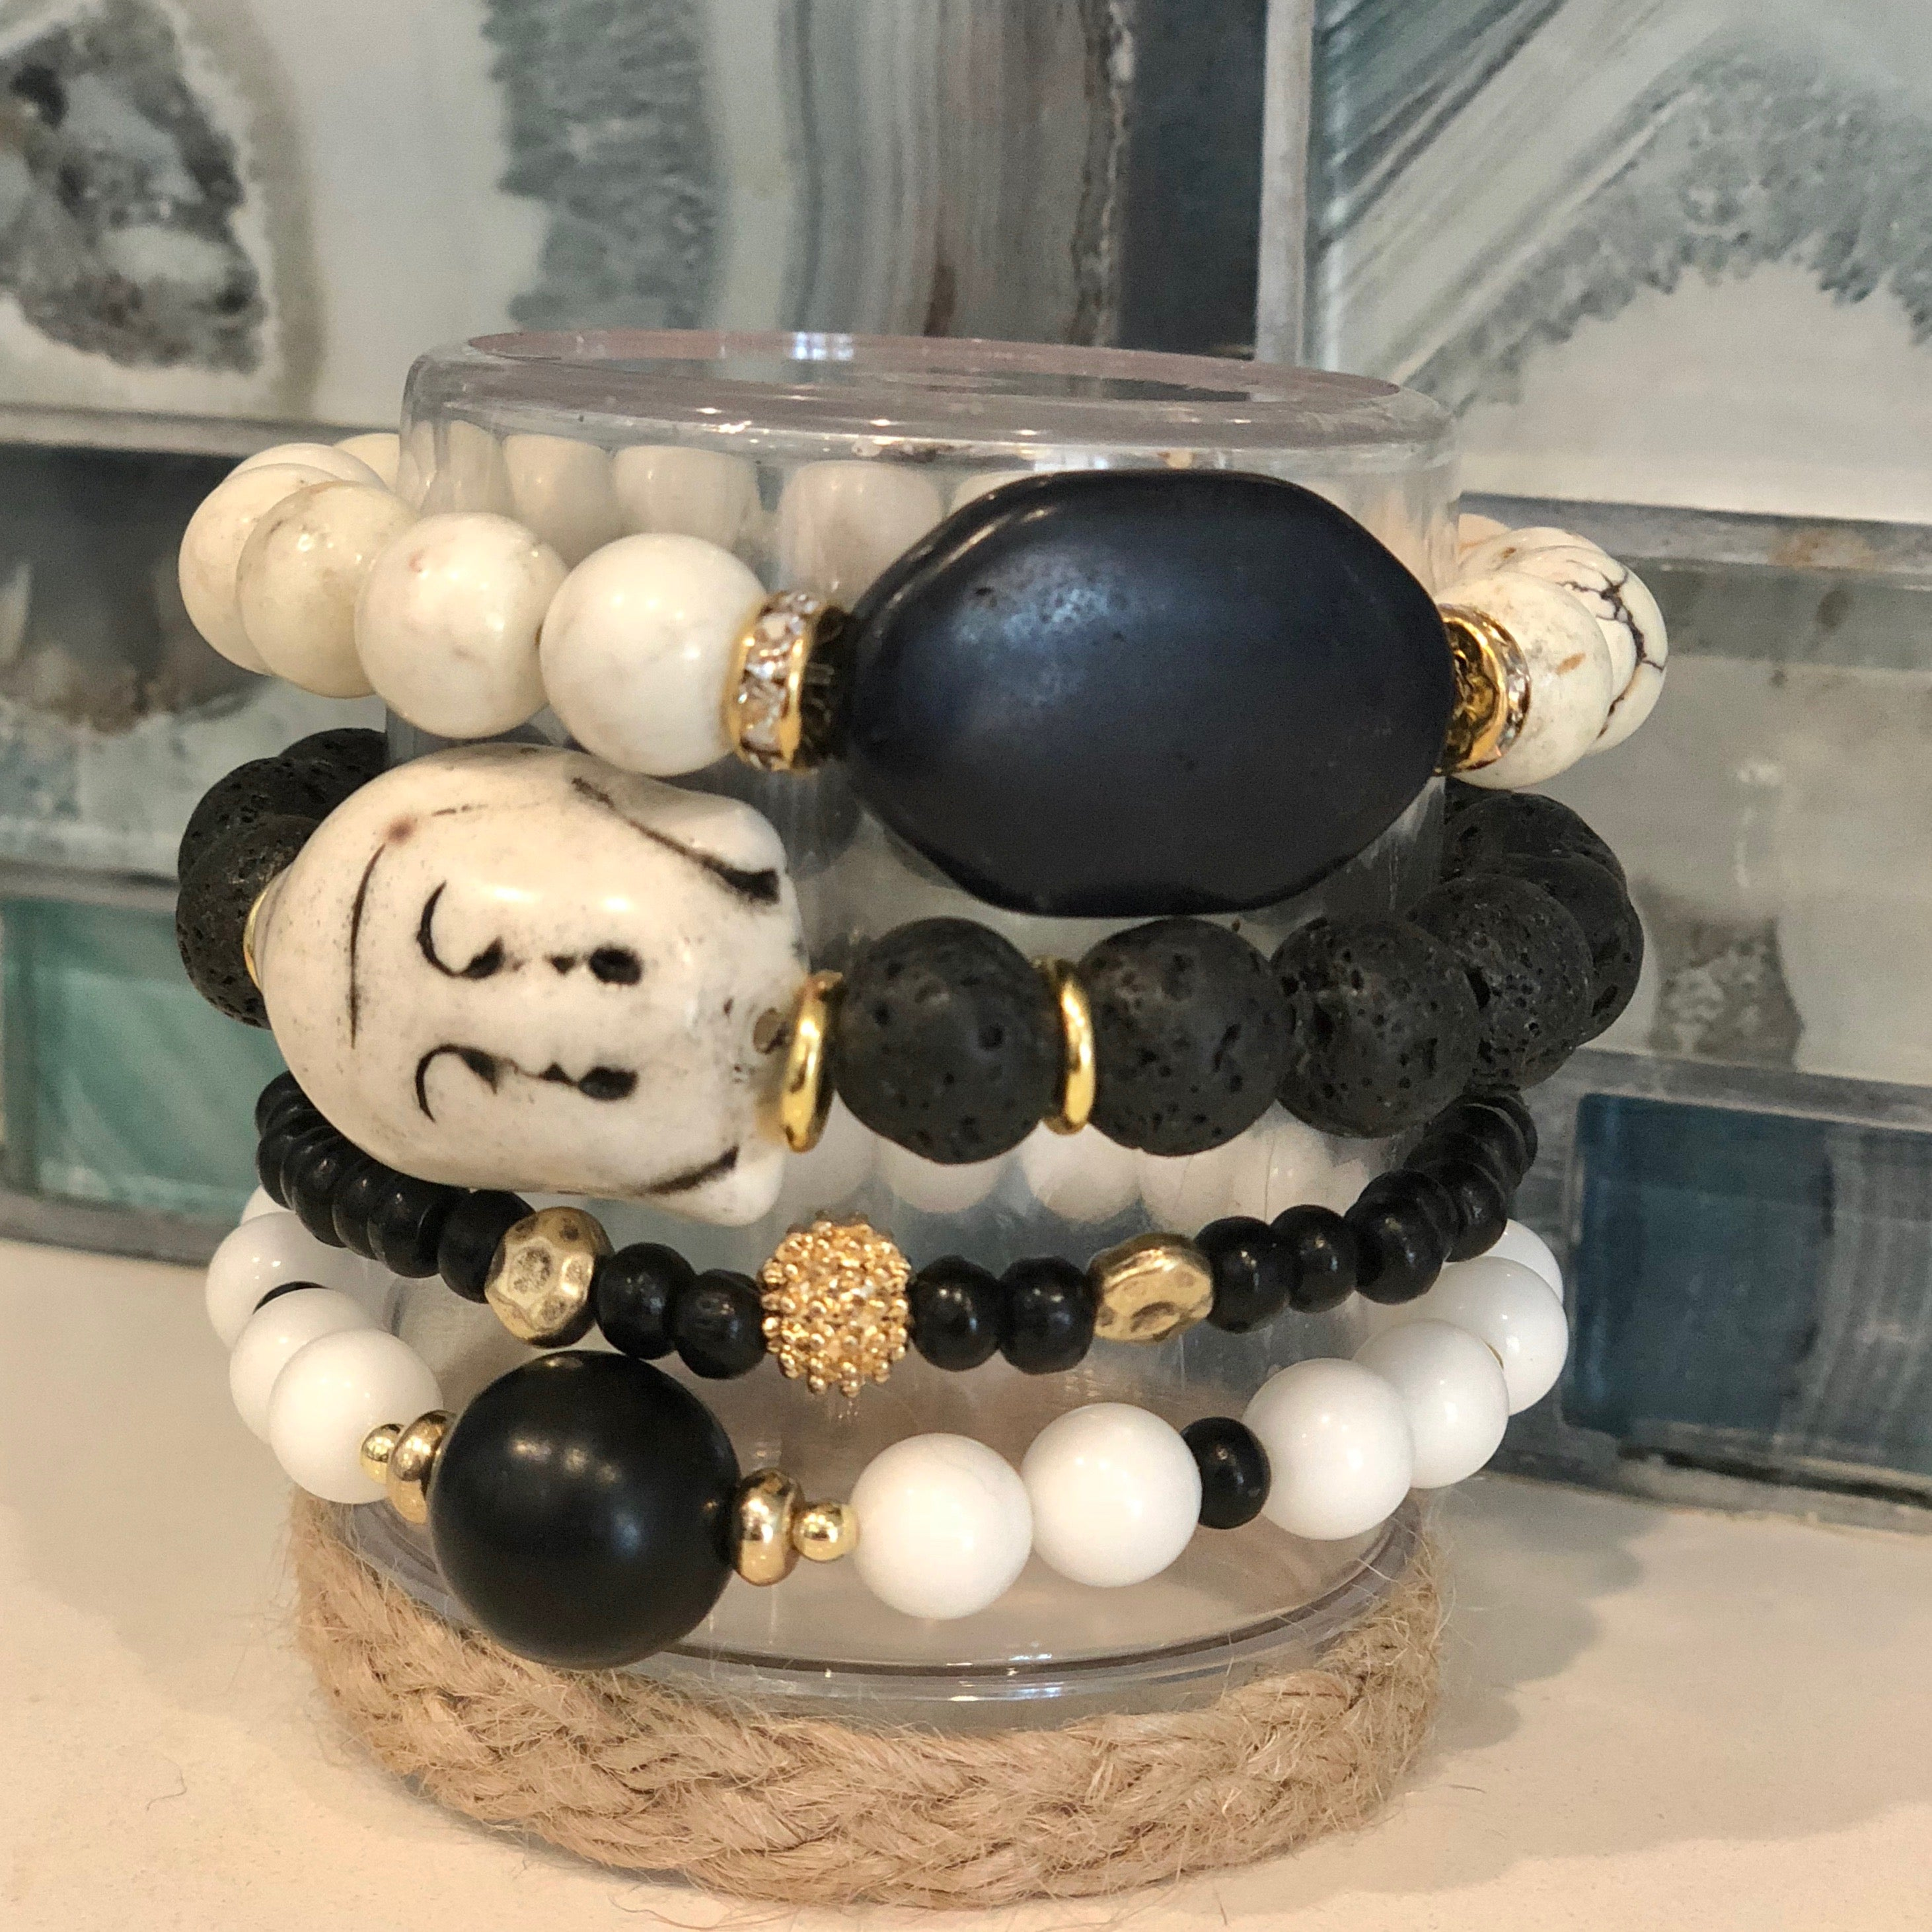 Set of 4 gemstone beaded bracelets with a Howlite Buddha centerpiece. Lava stone beads mixed with white onyx and wood beads with gold accents.